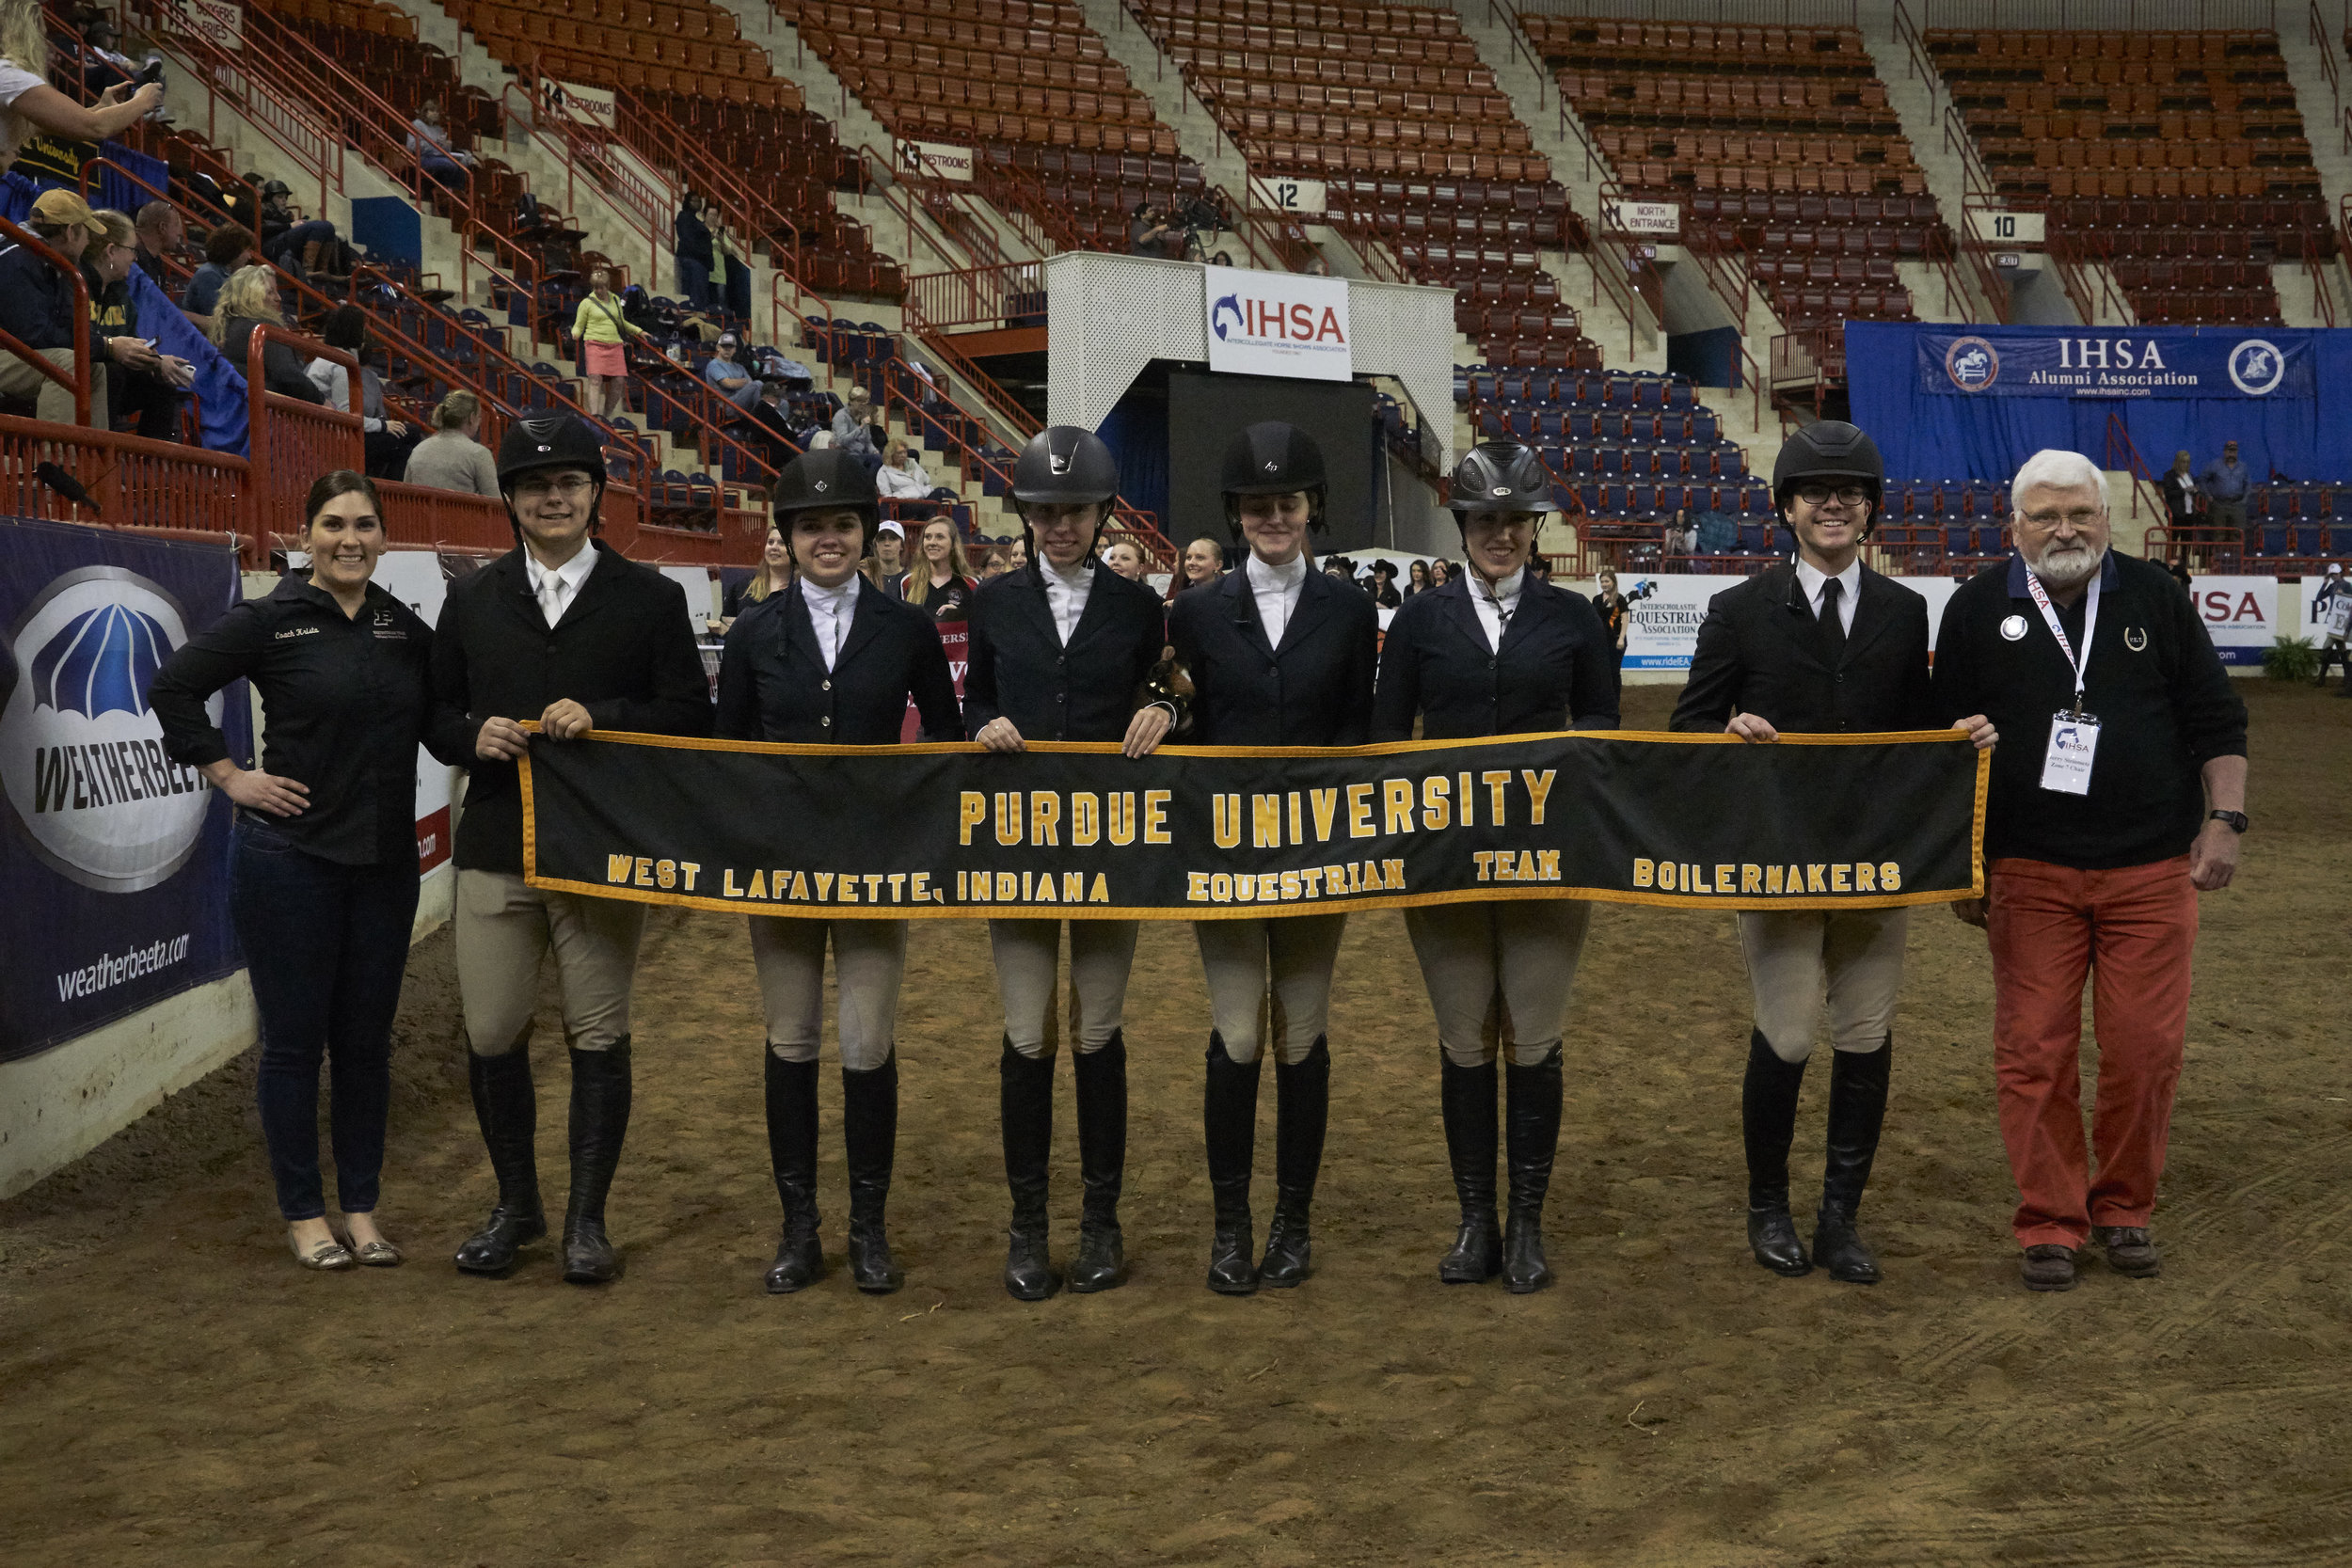 Purdue University is one of over 400 colleges and universities with IHSA teams  in the U.S. and Canada. Photo by Lisa Giris